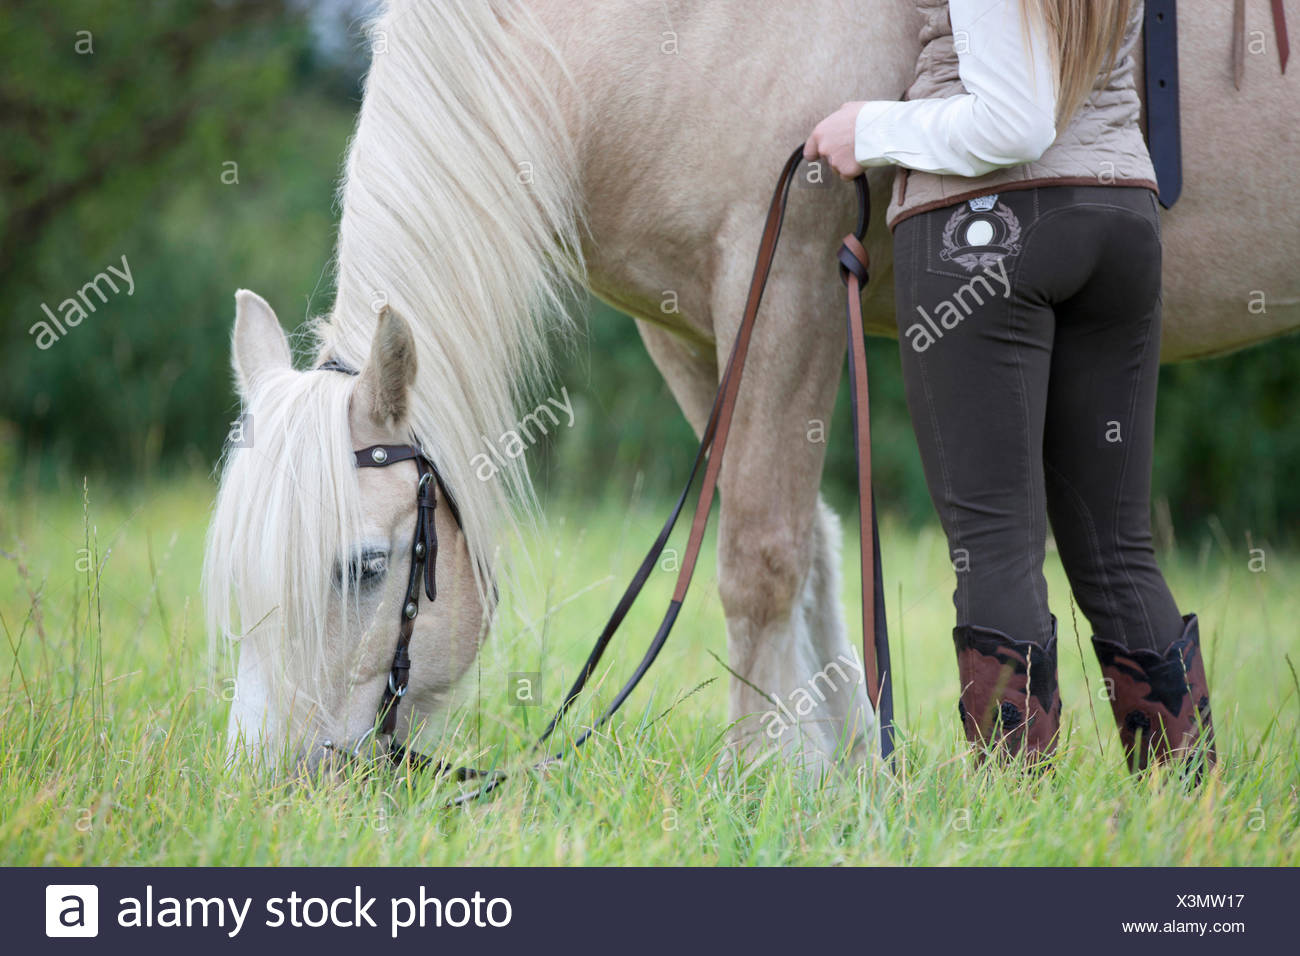 A young woman grazing a palomino horse, cropped - Stock Image